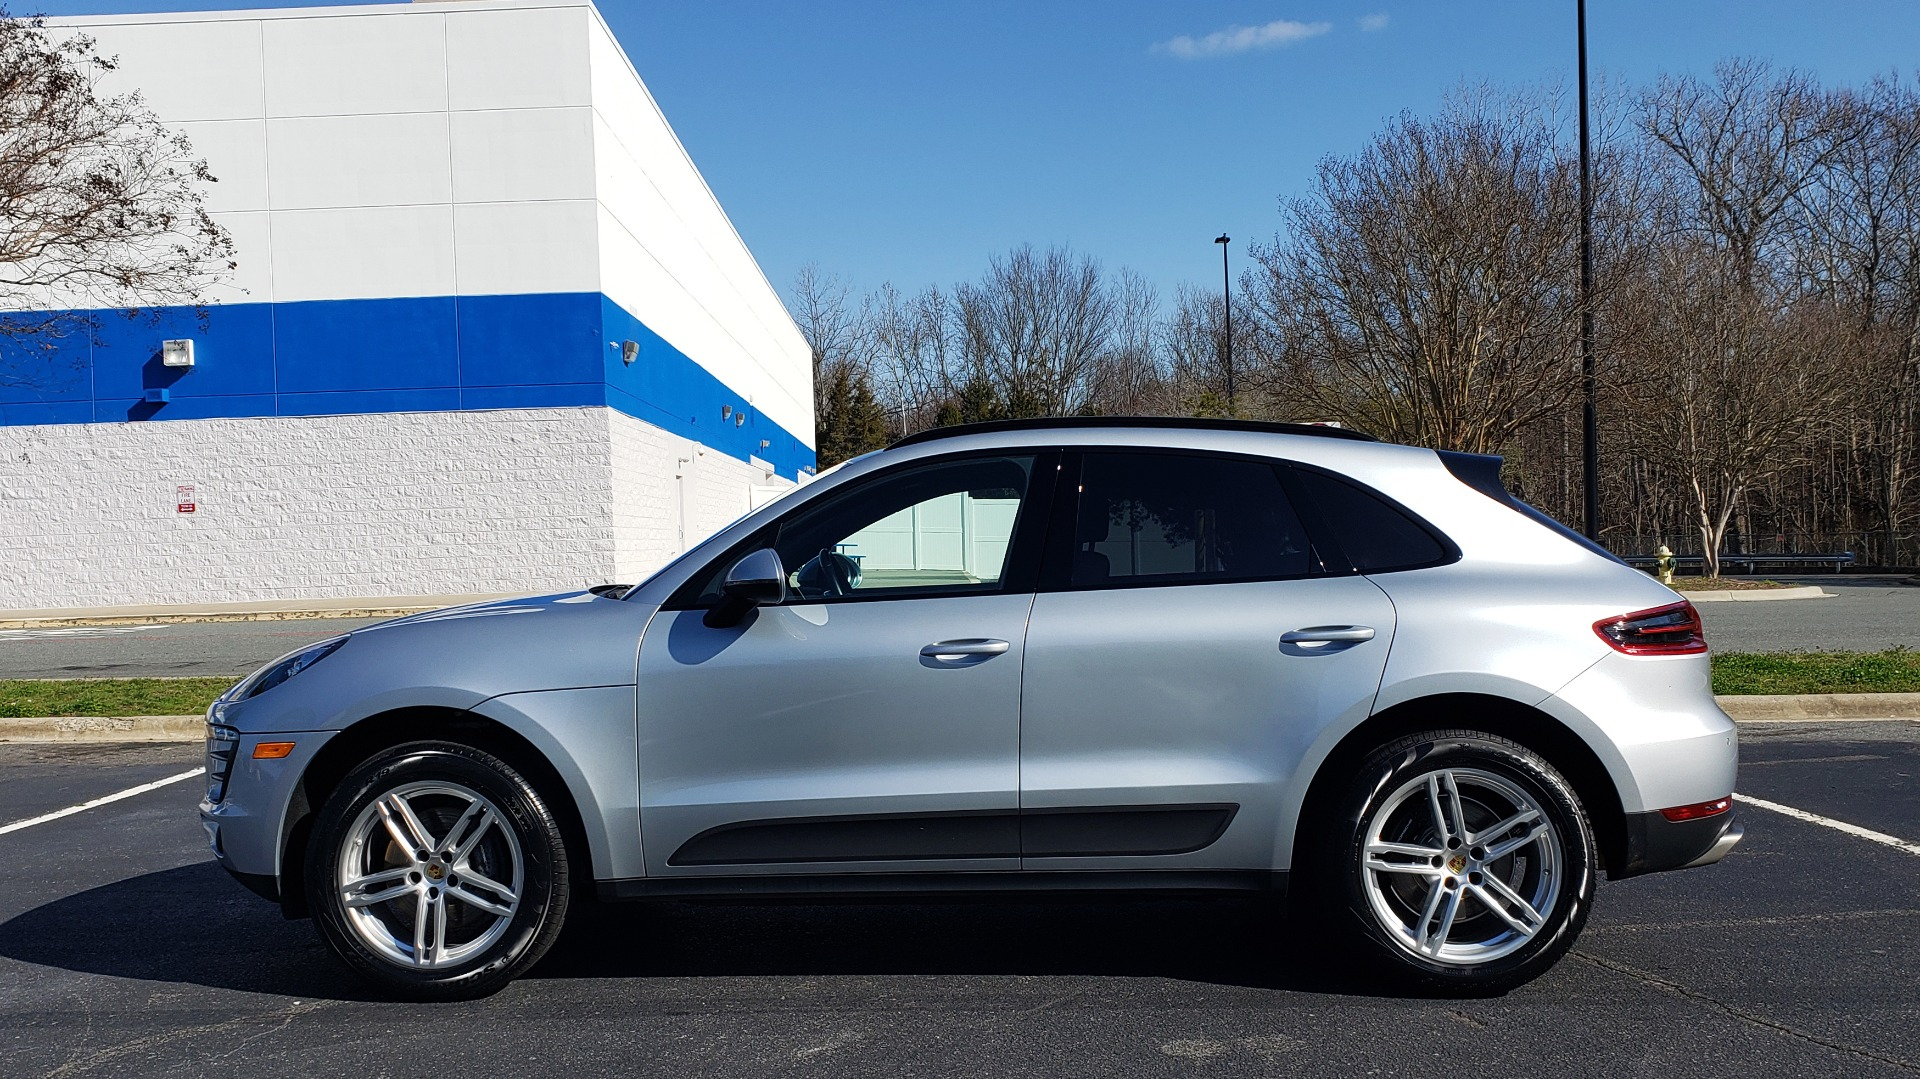 Used 2018 Porsche MACAN AWD / PDK / NAV / PANO-ROOF / BOSE / REARVIEW / LCA for sale Sold at Formula Imports in Charlotte NC 28227 2